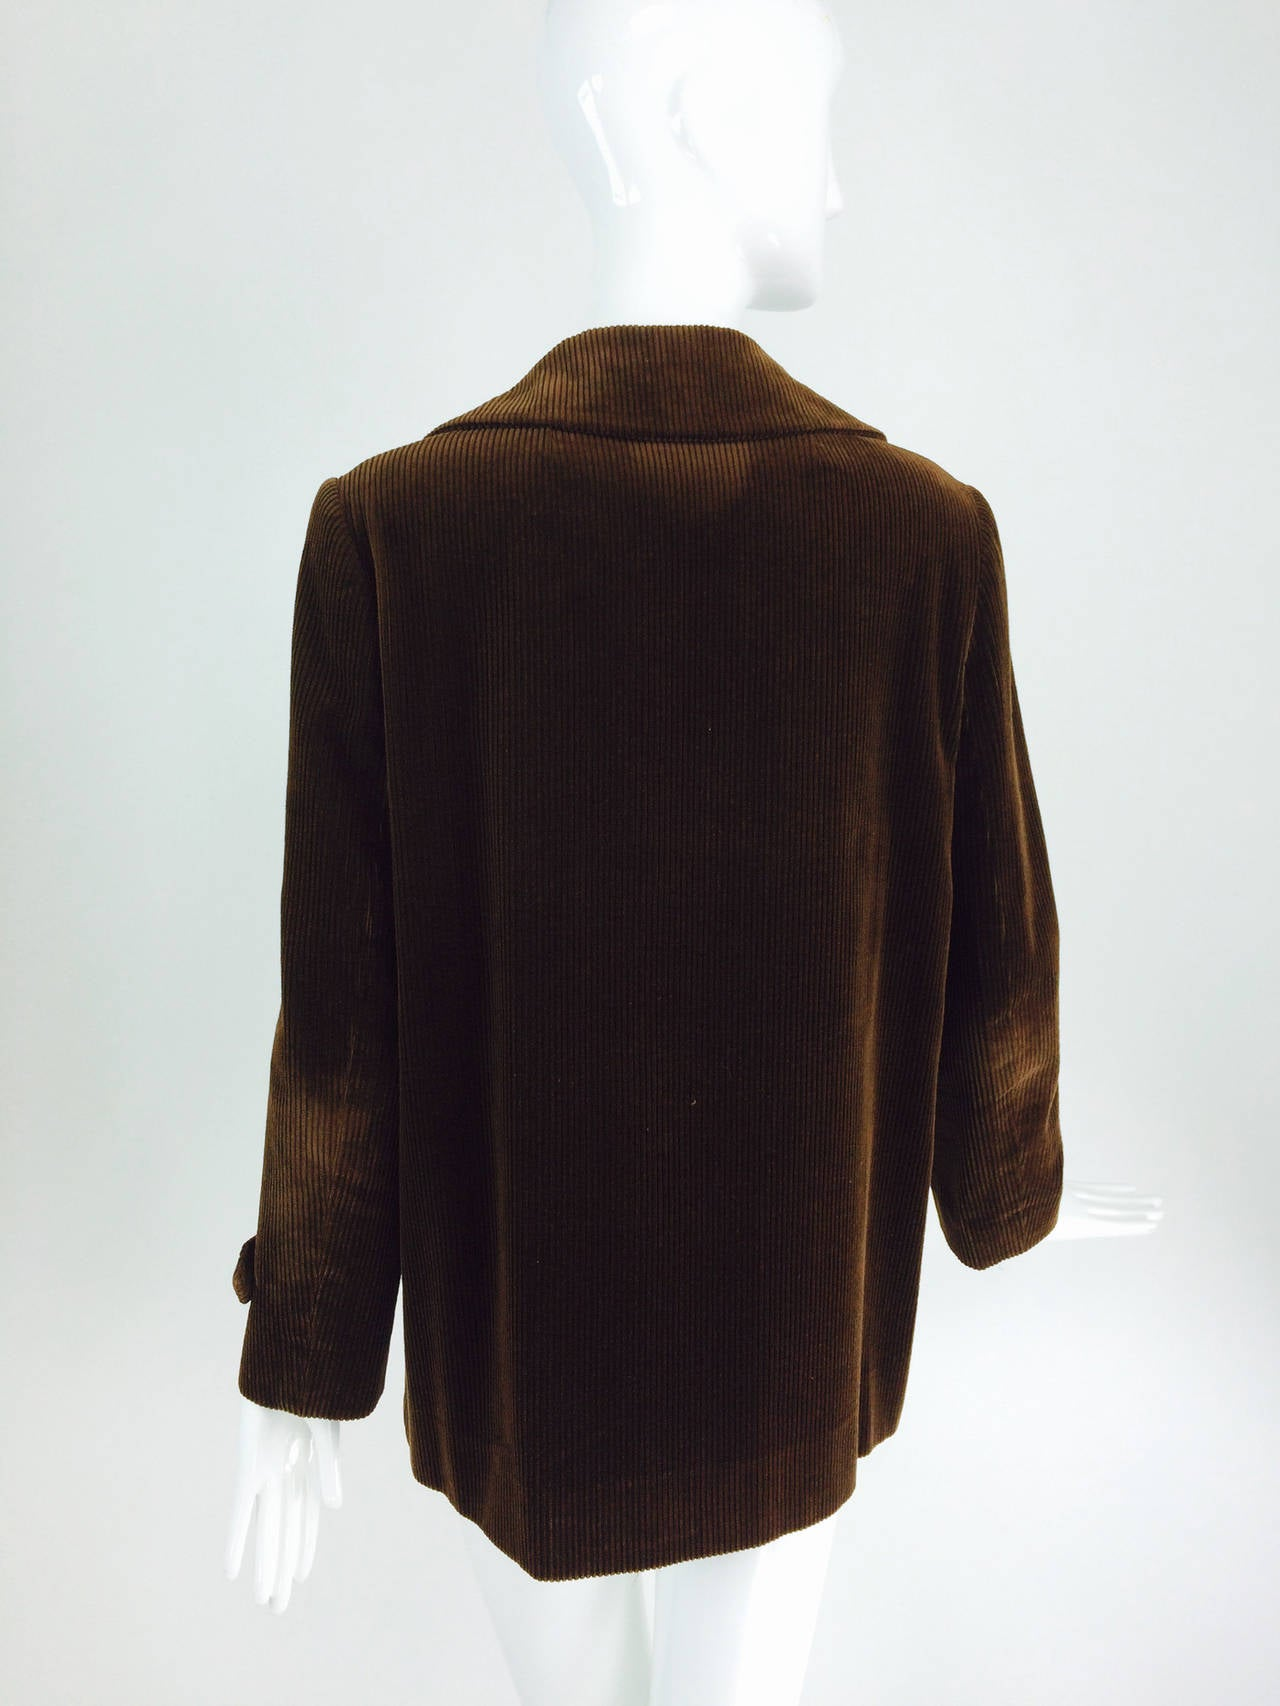 Bill Blass chocolate brown corduroy country jacket early 1970s In Excellent Condition For Sale In West Palm Beach, FL